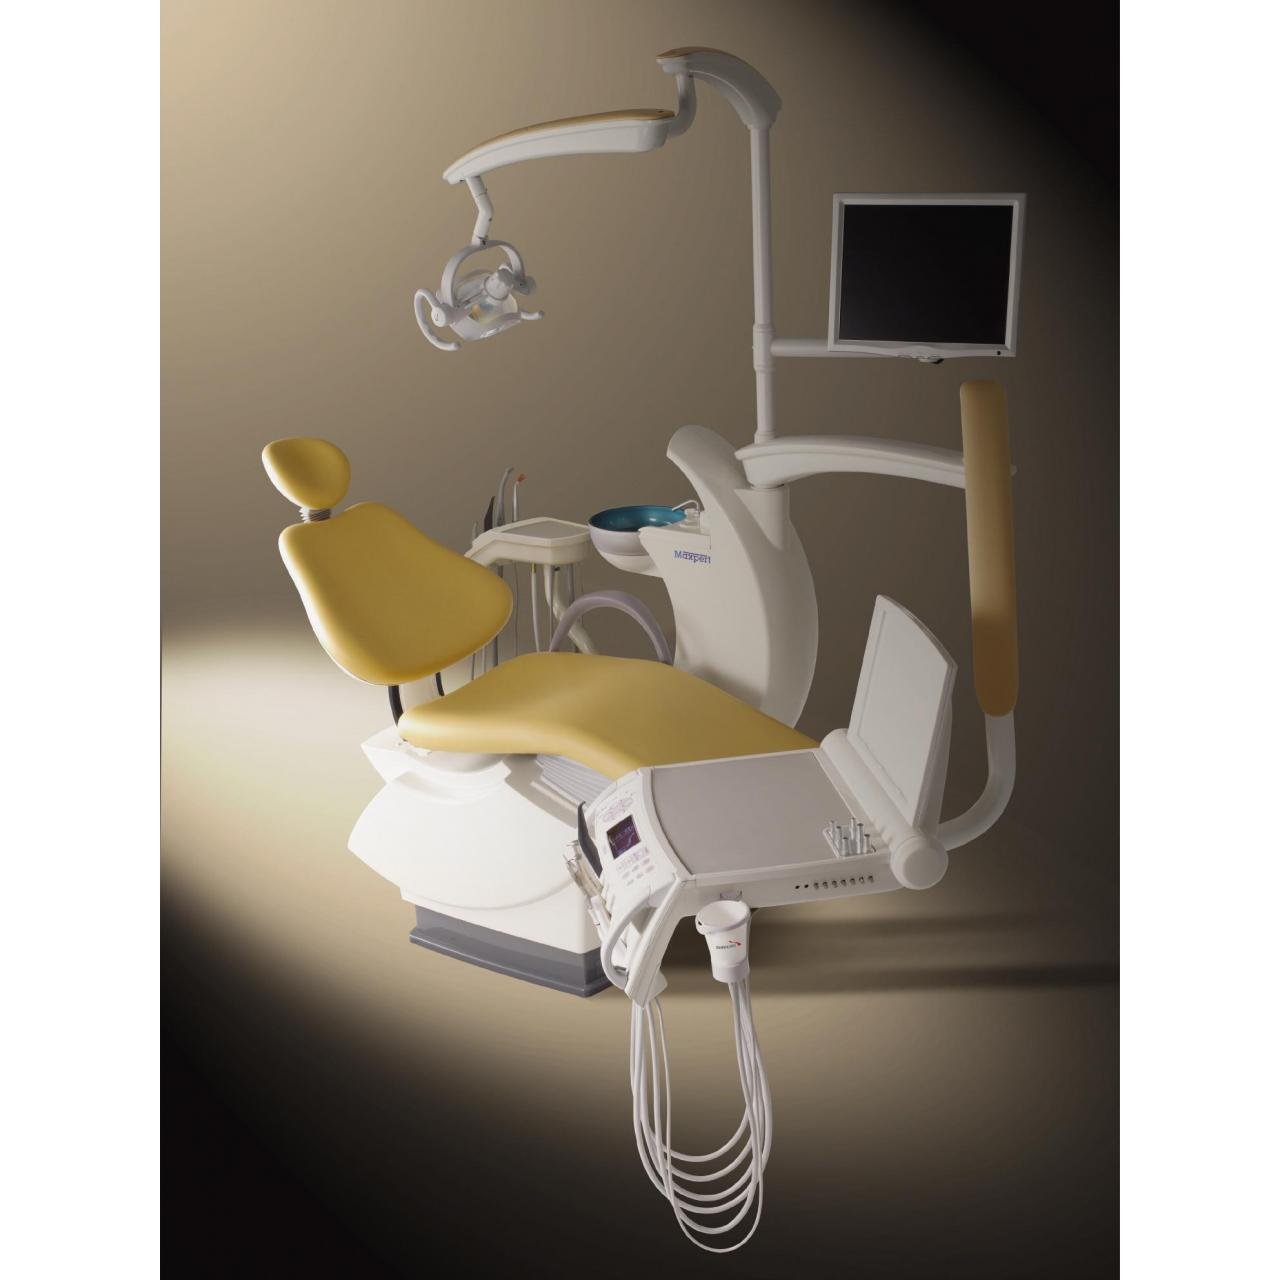 automatic equipment Maxpert Digitized dentistry complex therapy Taiwan